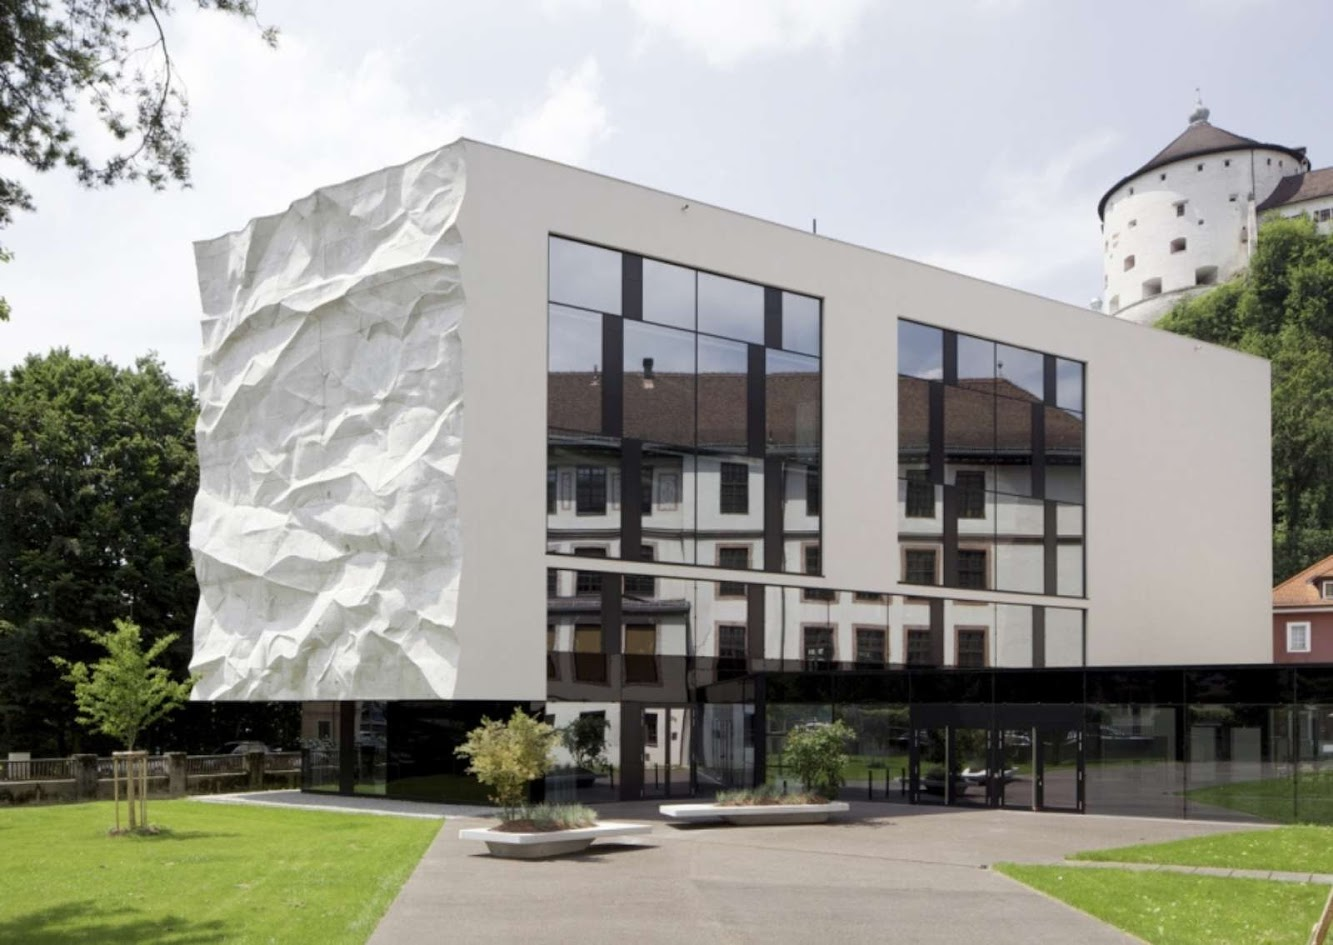 School Extension with Crinkled Wall by Johannes Wiesflecker